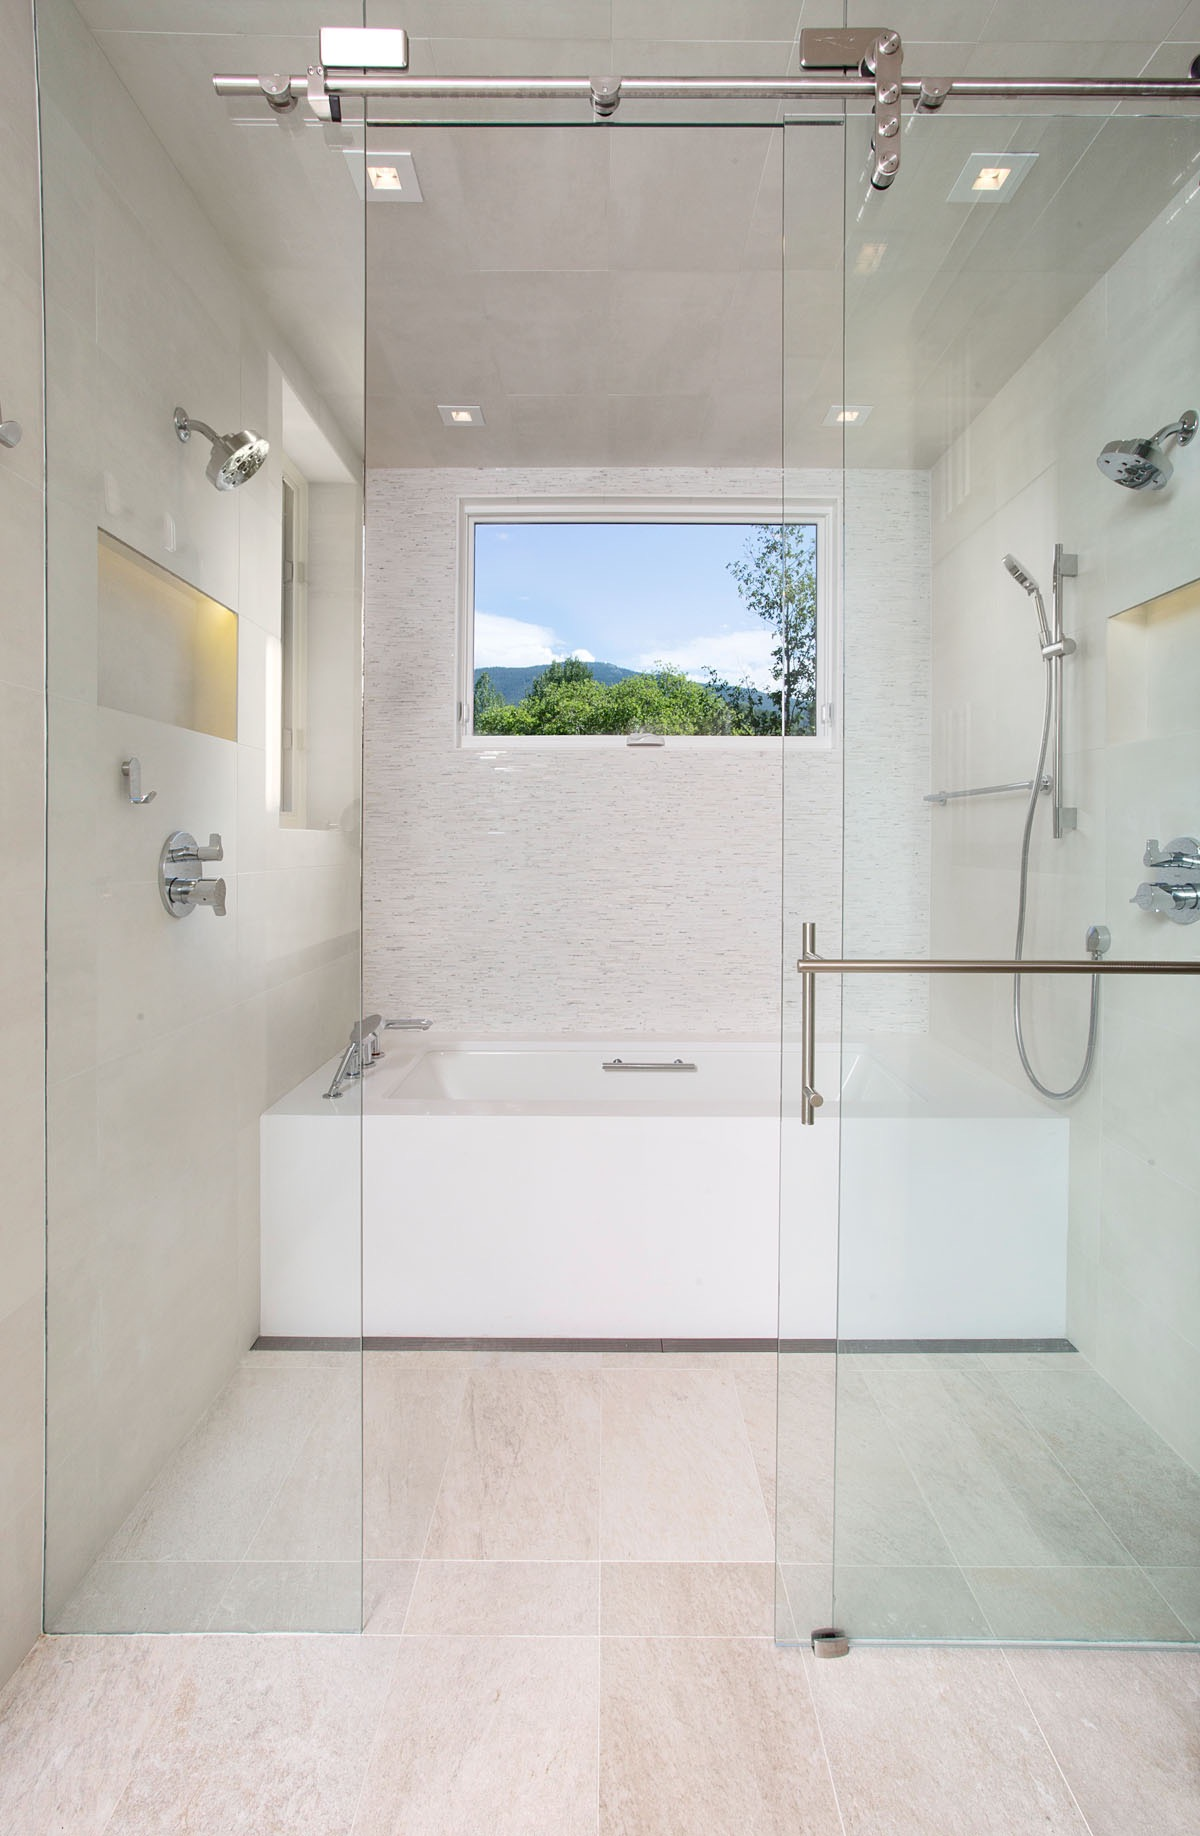 Minimalist Modern Bathroom With Shower And Soaking Tub (View 10 of 19)